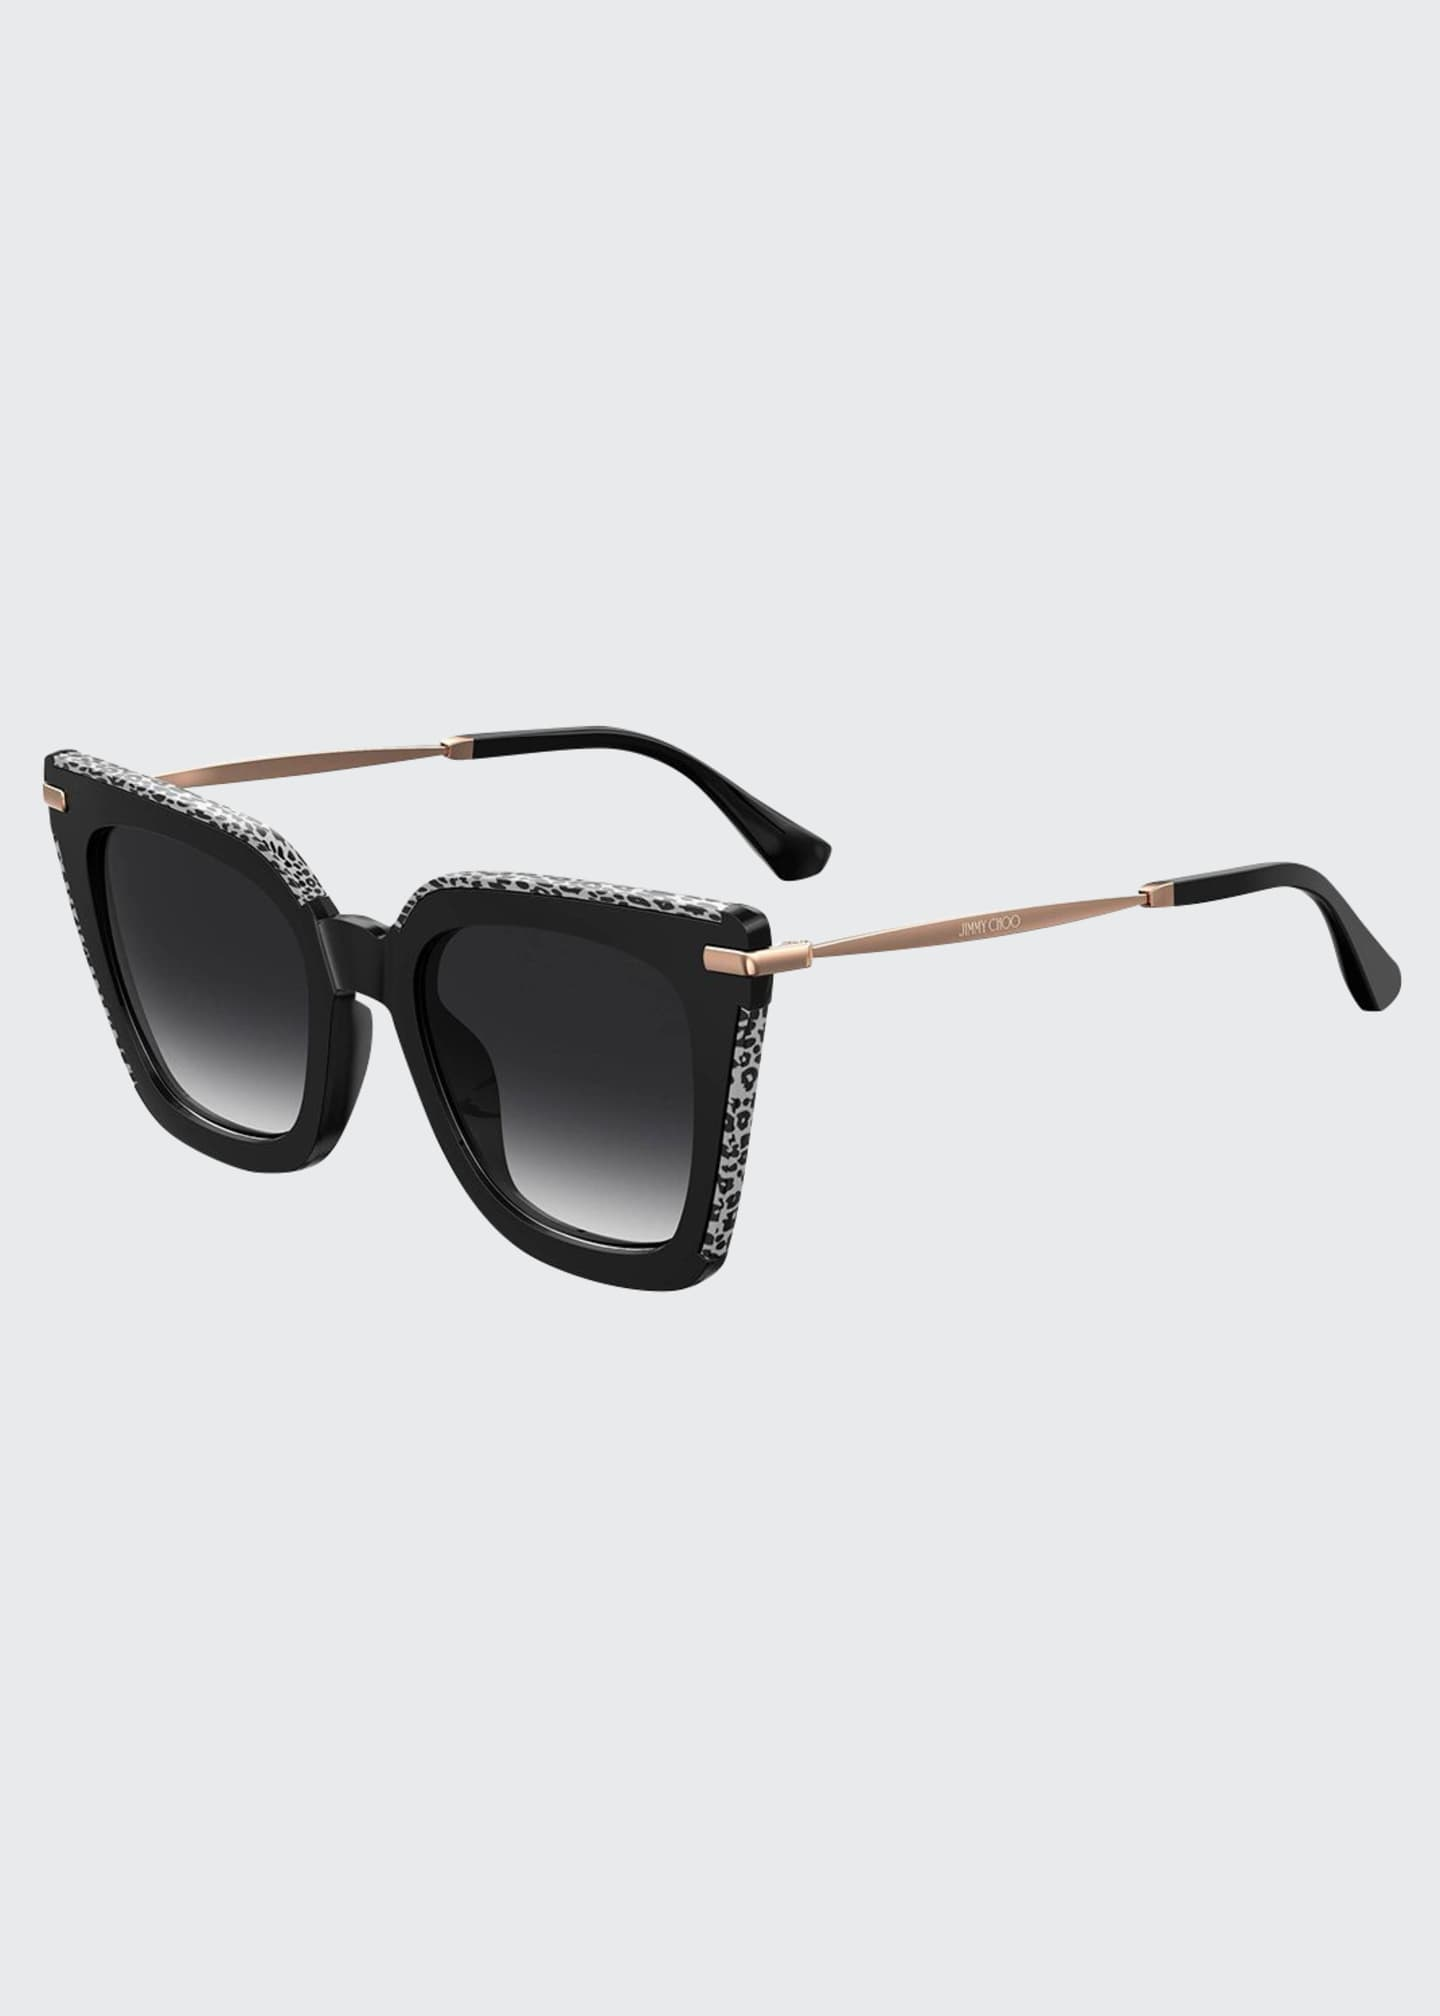 Jimmy Choo Ciarags Square Propionate Sunglasses